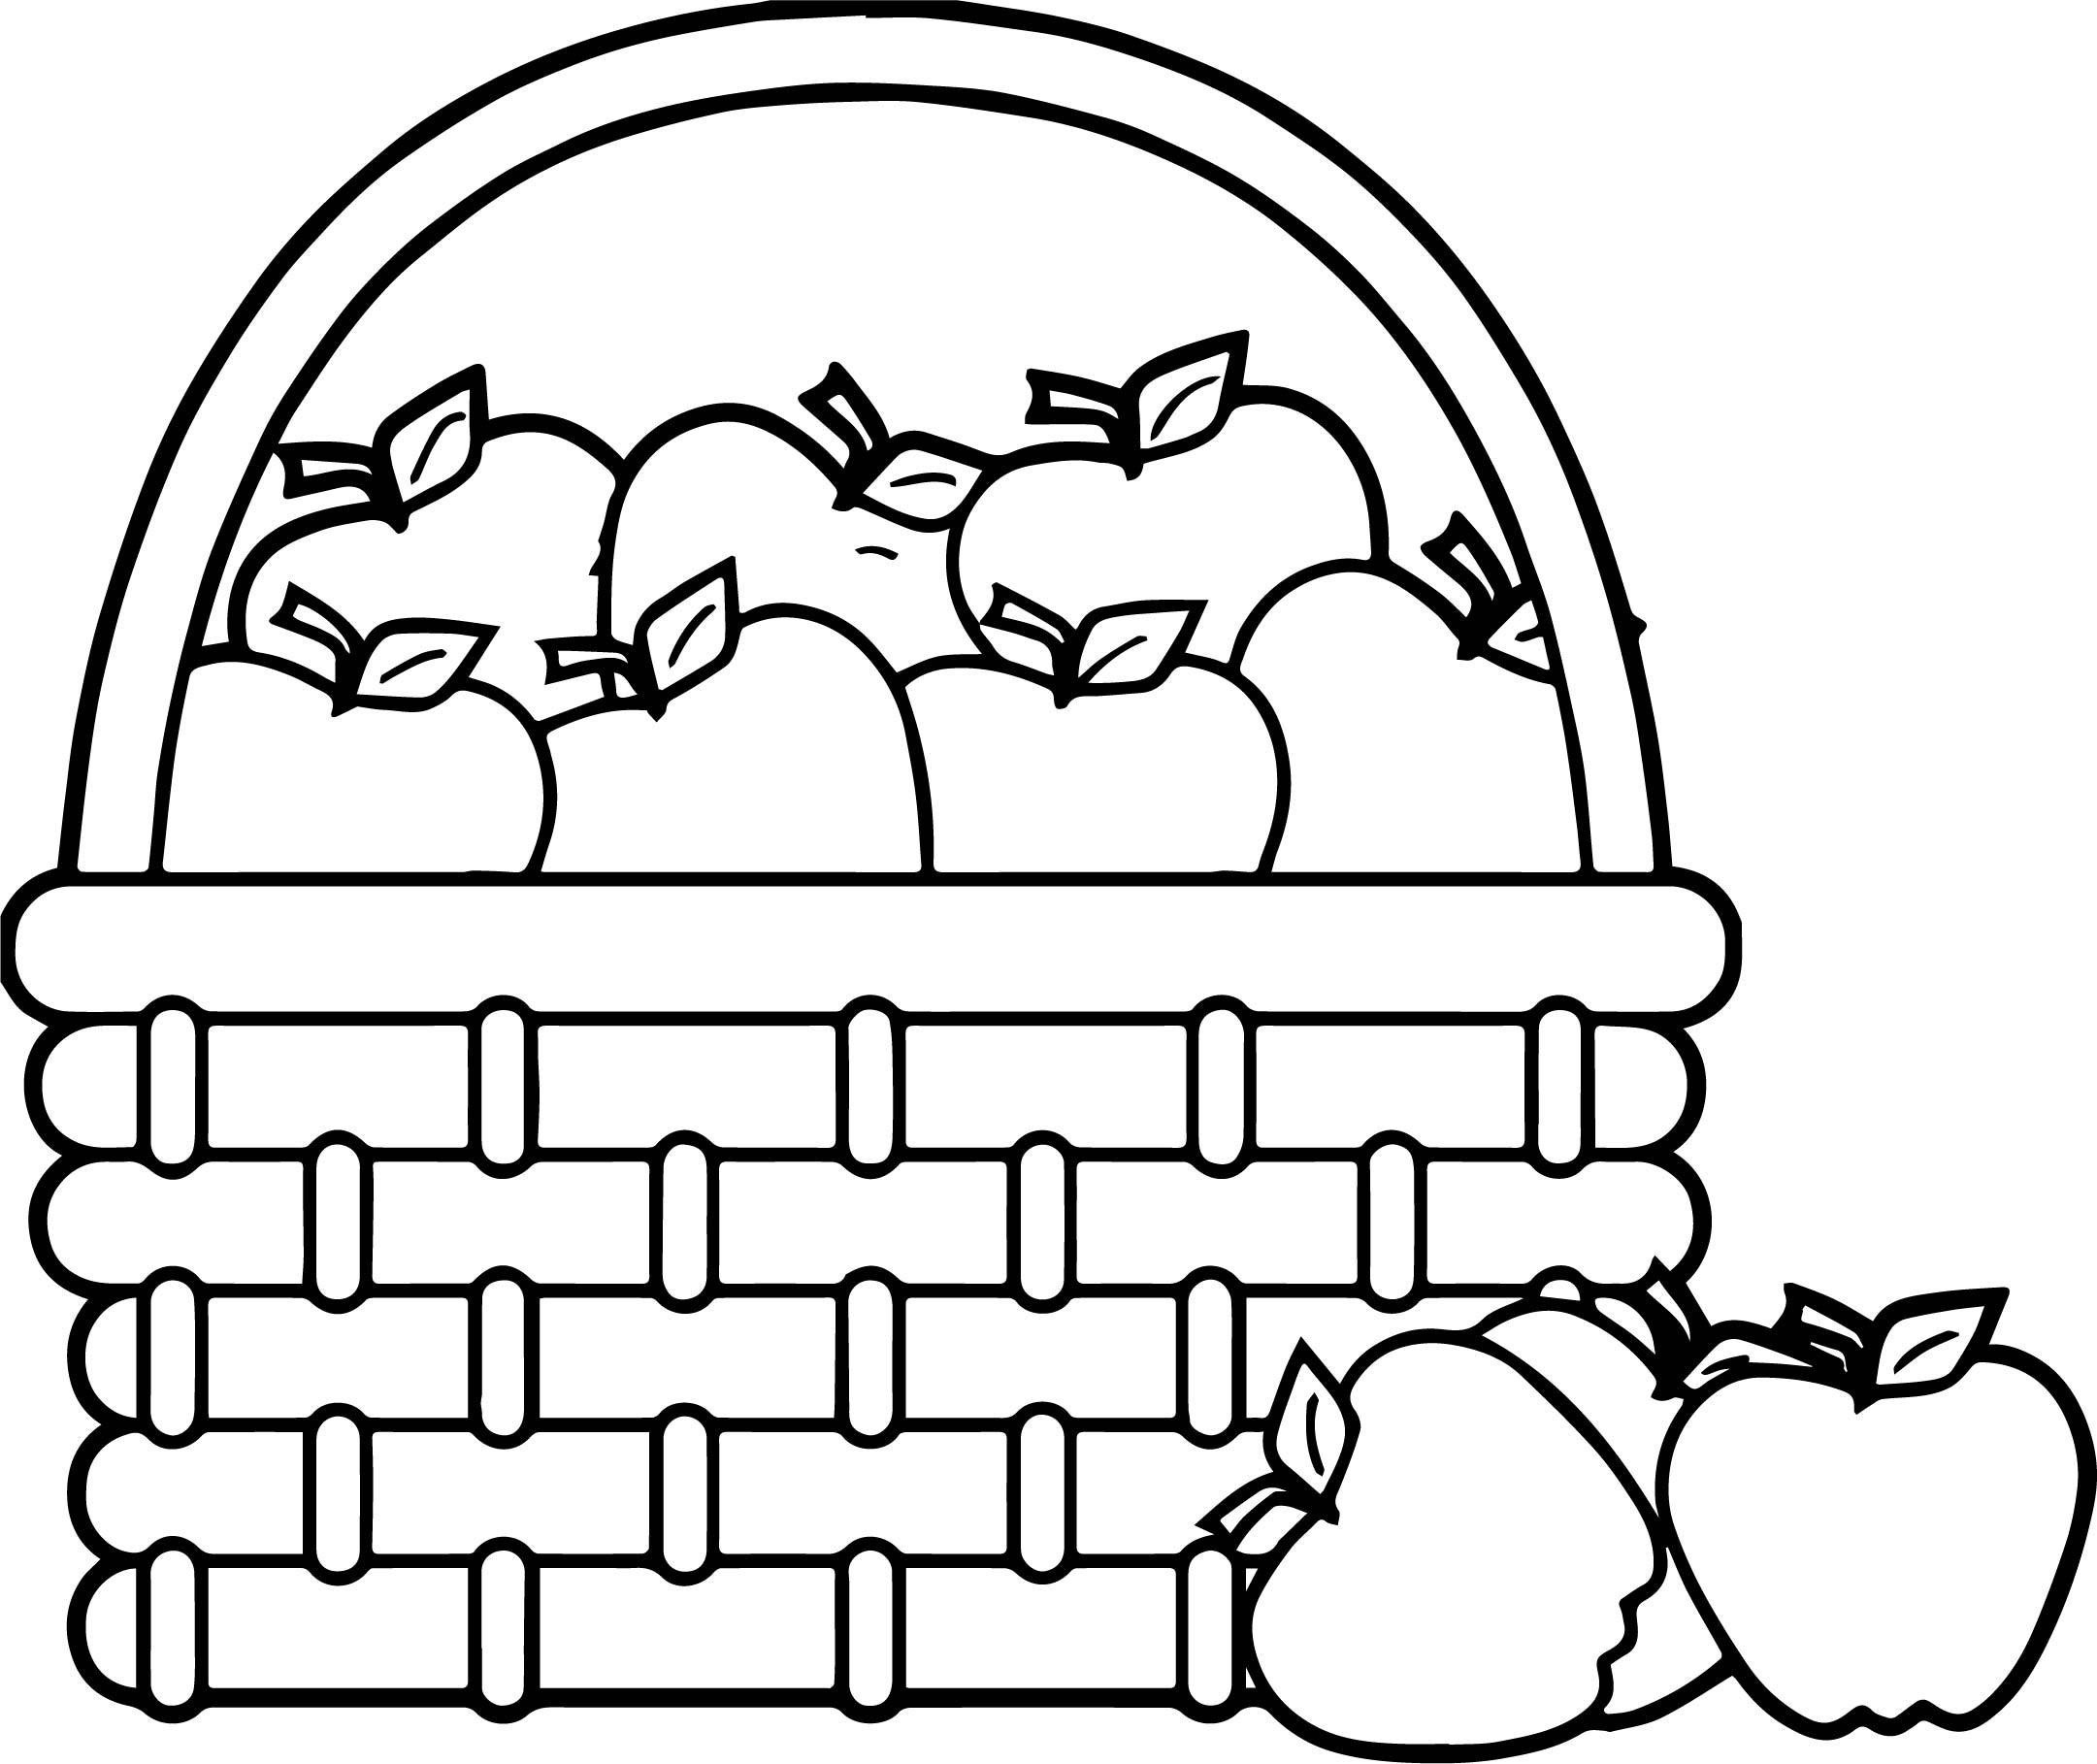 2161x1818 Picnic Drawing Picnic Basket For Free Download